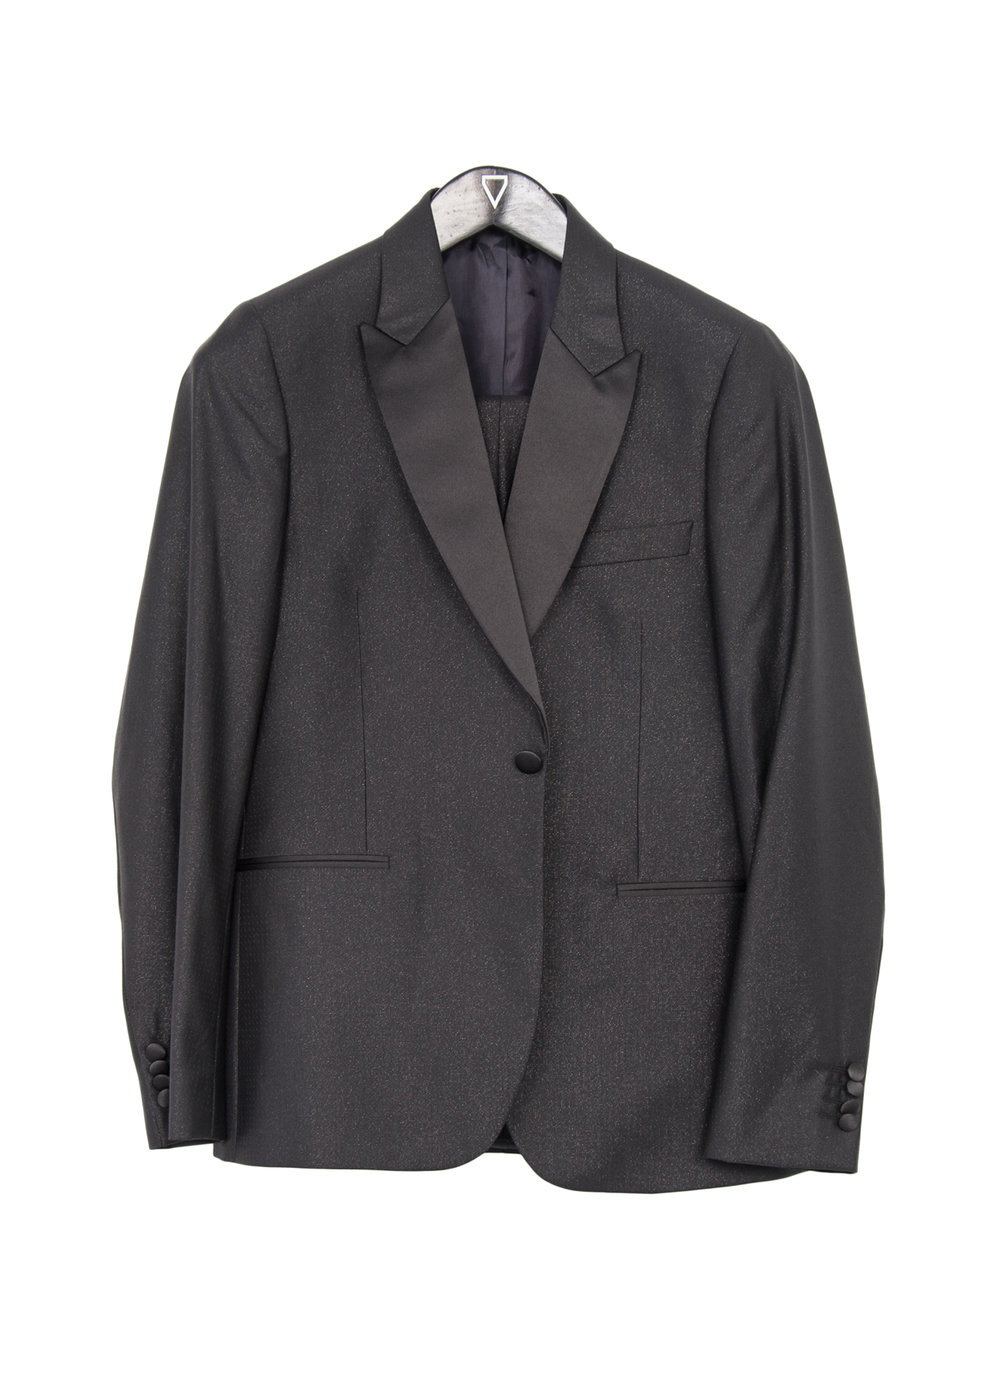 "40 PAUL SMITH TUXEDO ""PAUL-TUX01-40"""